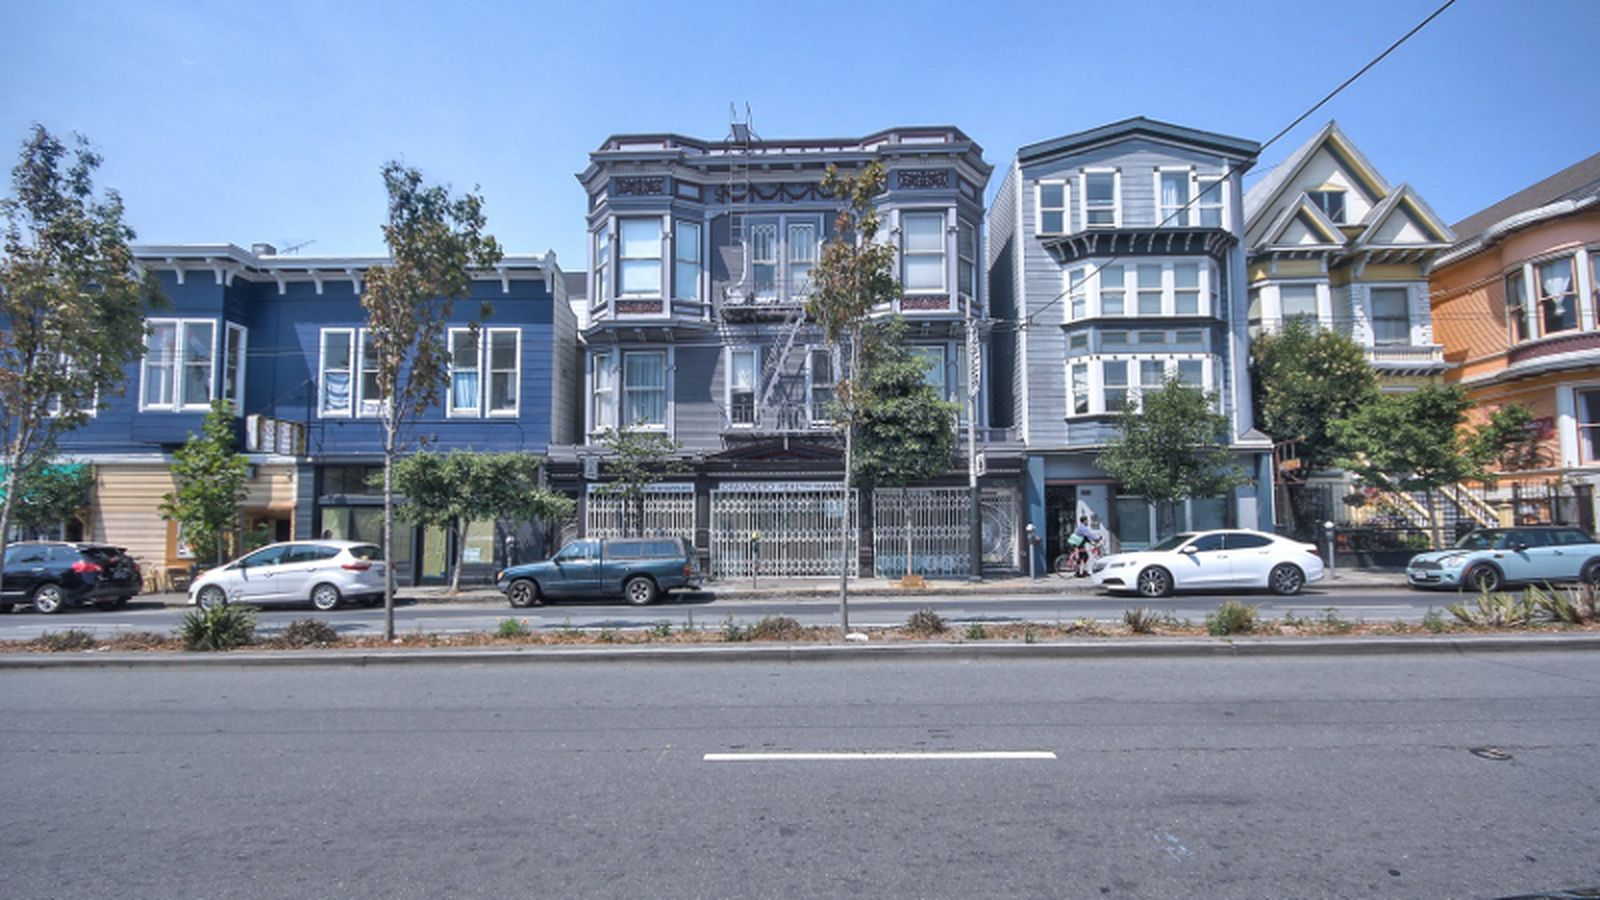 Rent Apartment In San Francisco For A Week